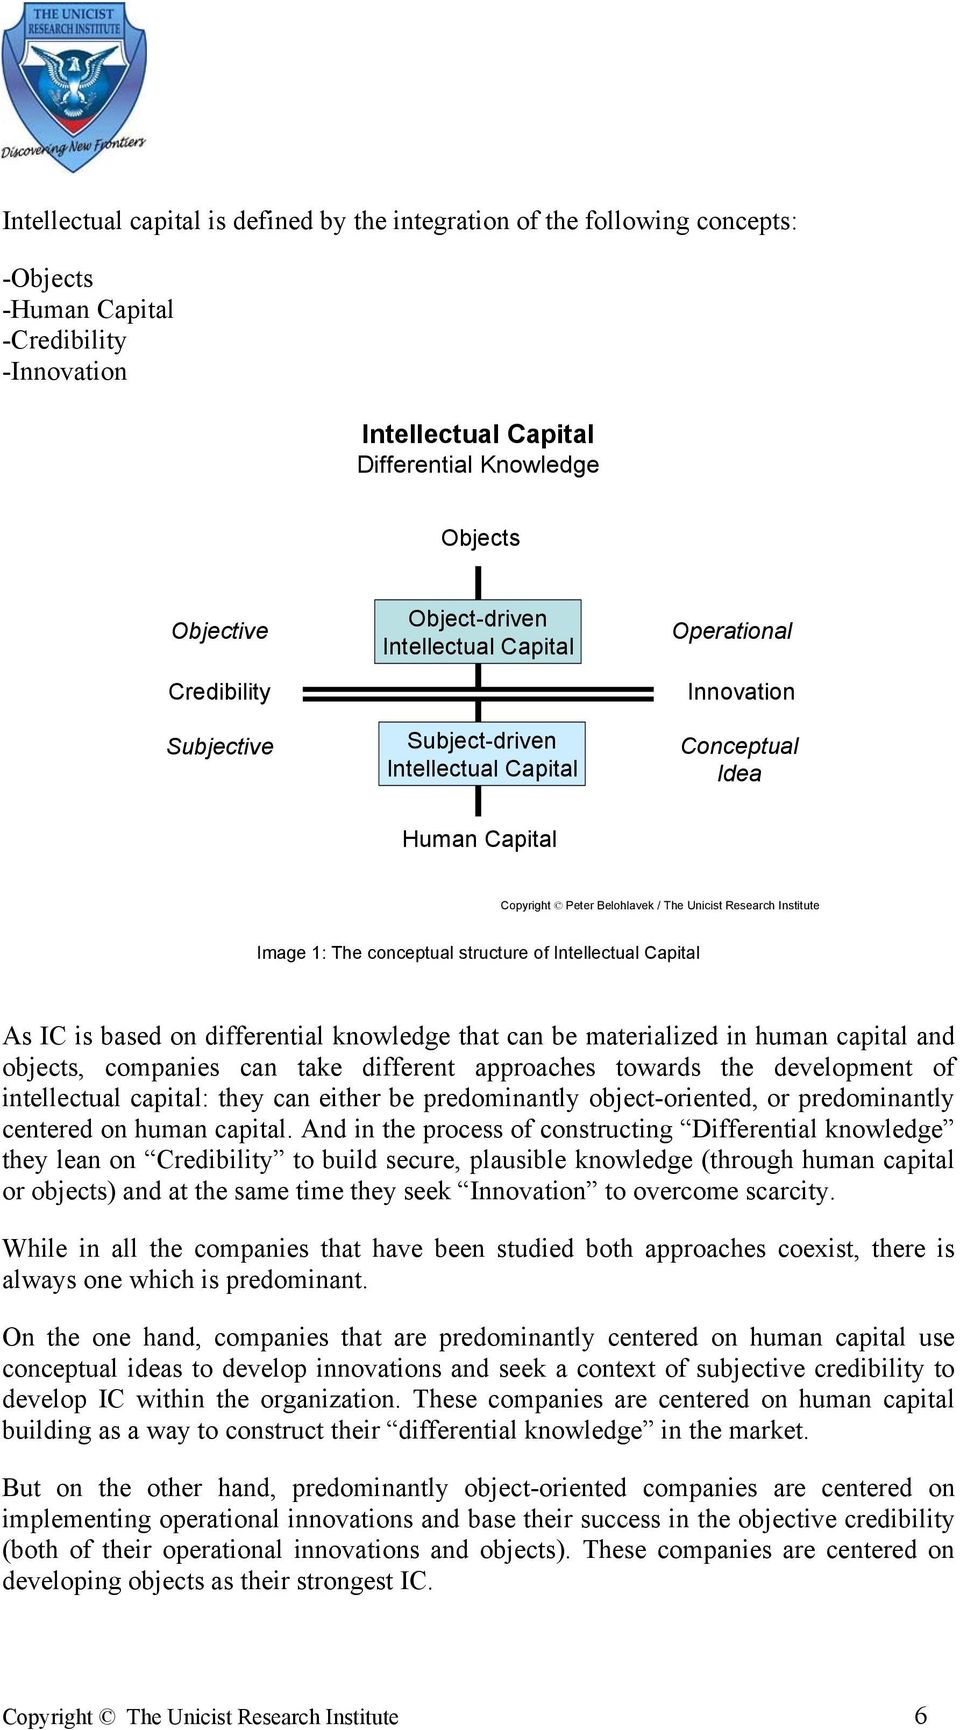 Institute Image 1: The conceptual structure of Intellectual Capital As IC is based on differential knowledge that can be materialized in human capital and objects, companies can take different